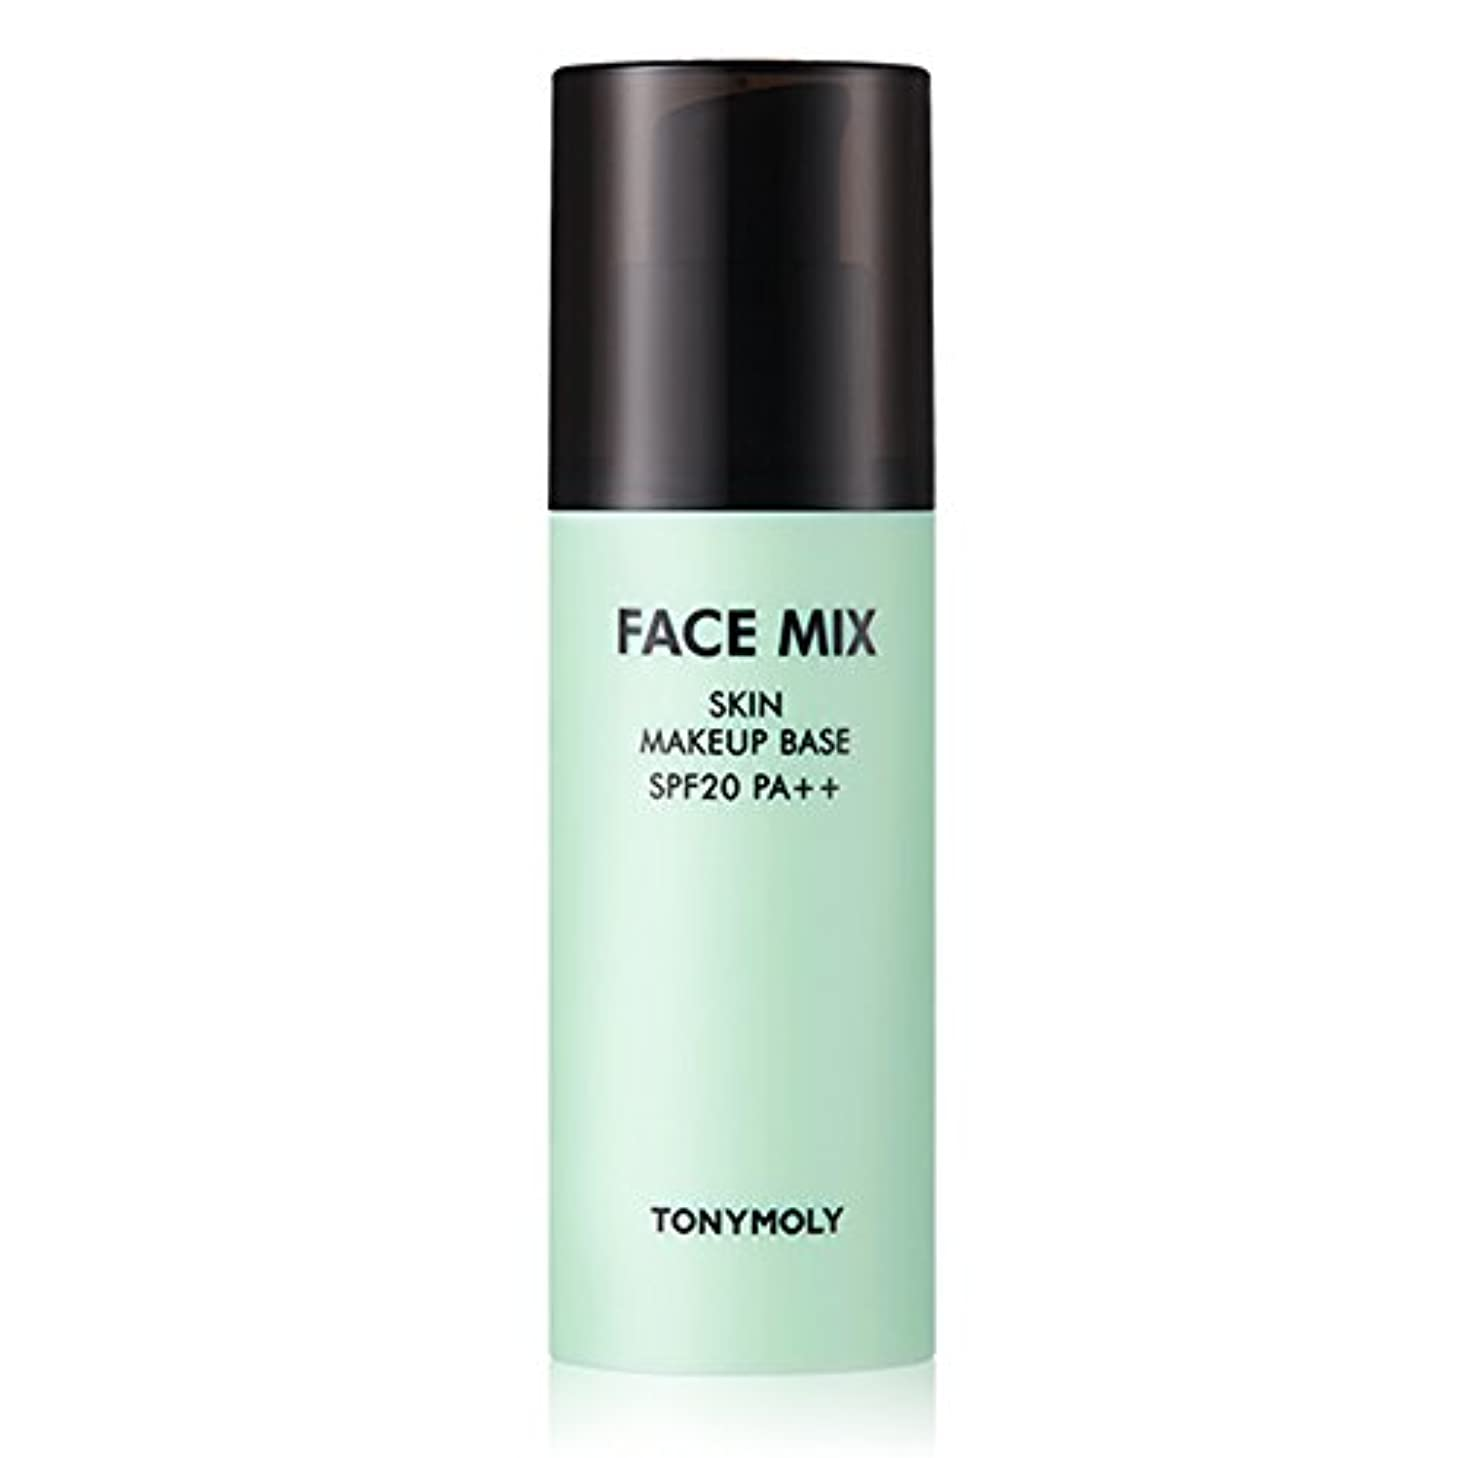 失われた不適熟達TONYMOLY FACE MIX SKIN MAKEUP BASE 01 MIX GREEN SPF20 PA+++ 30g